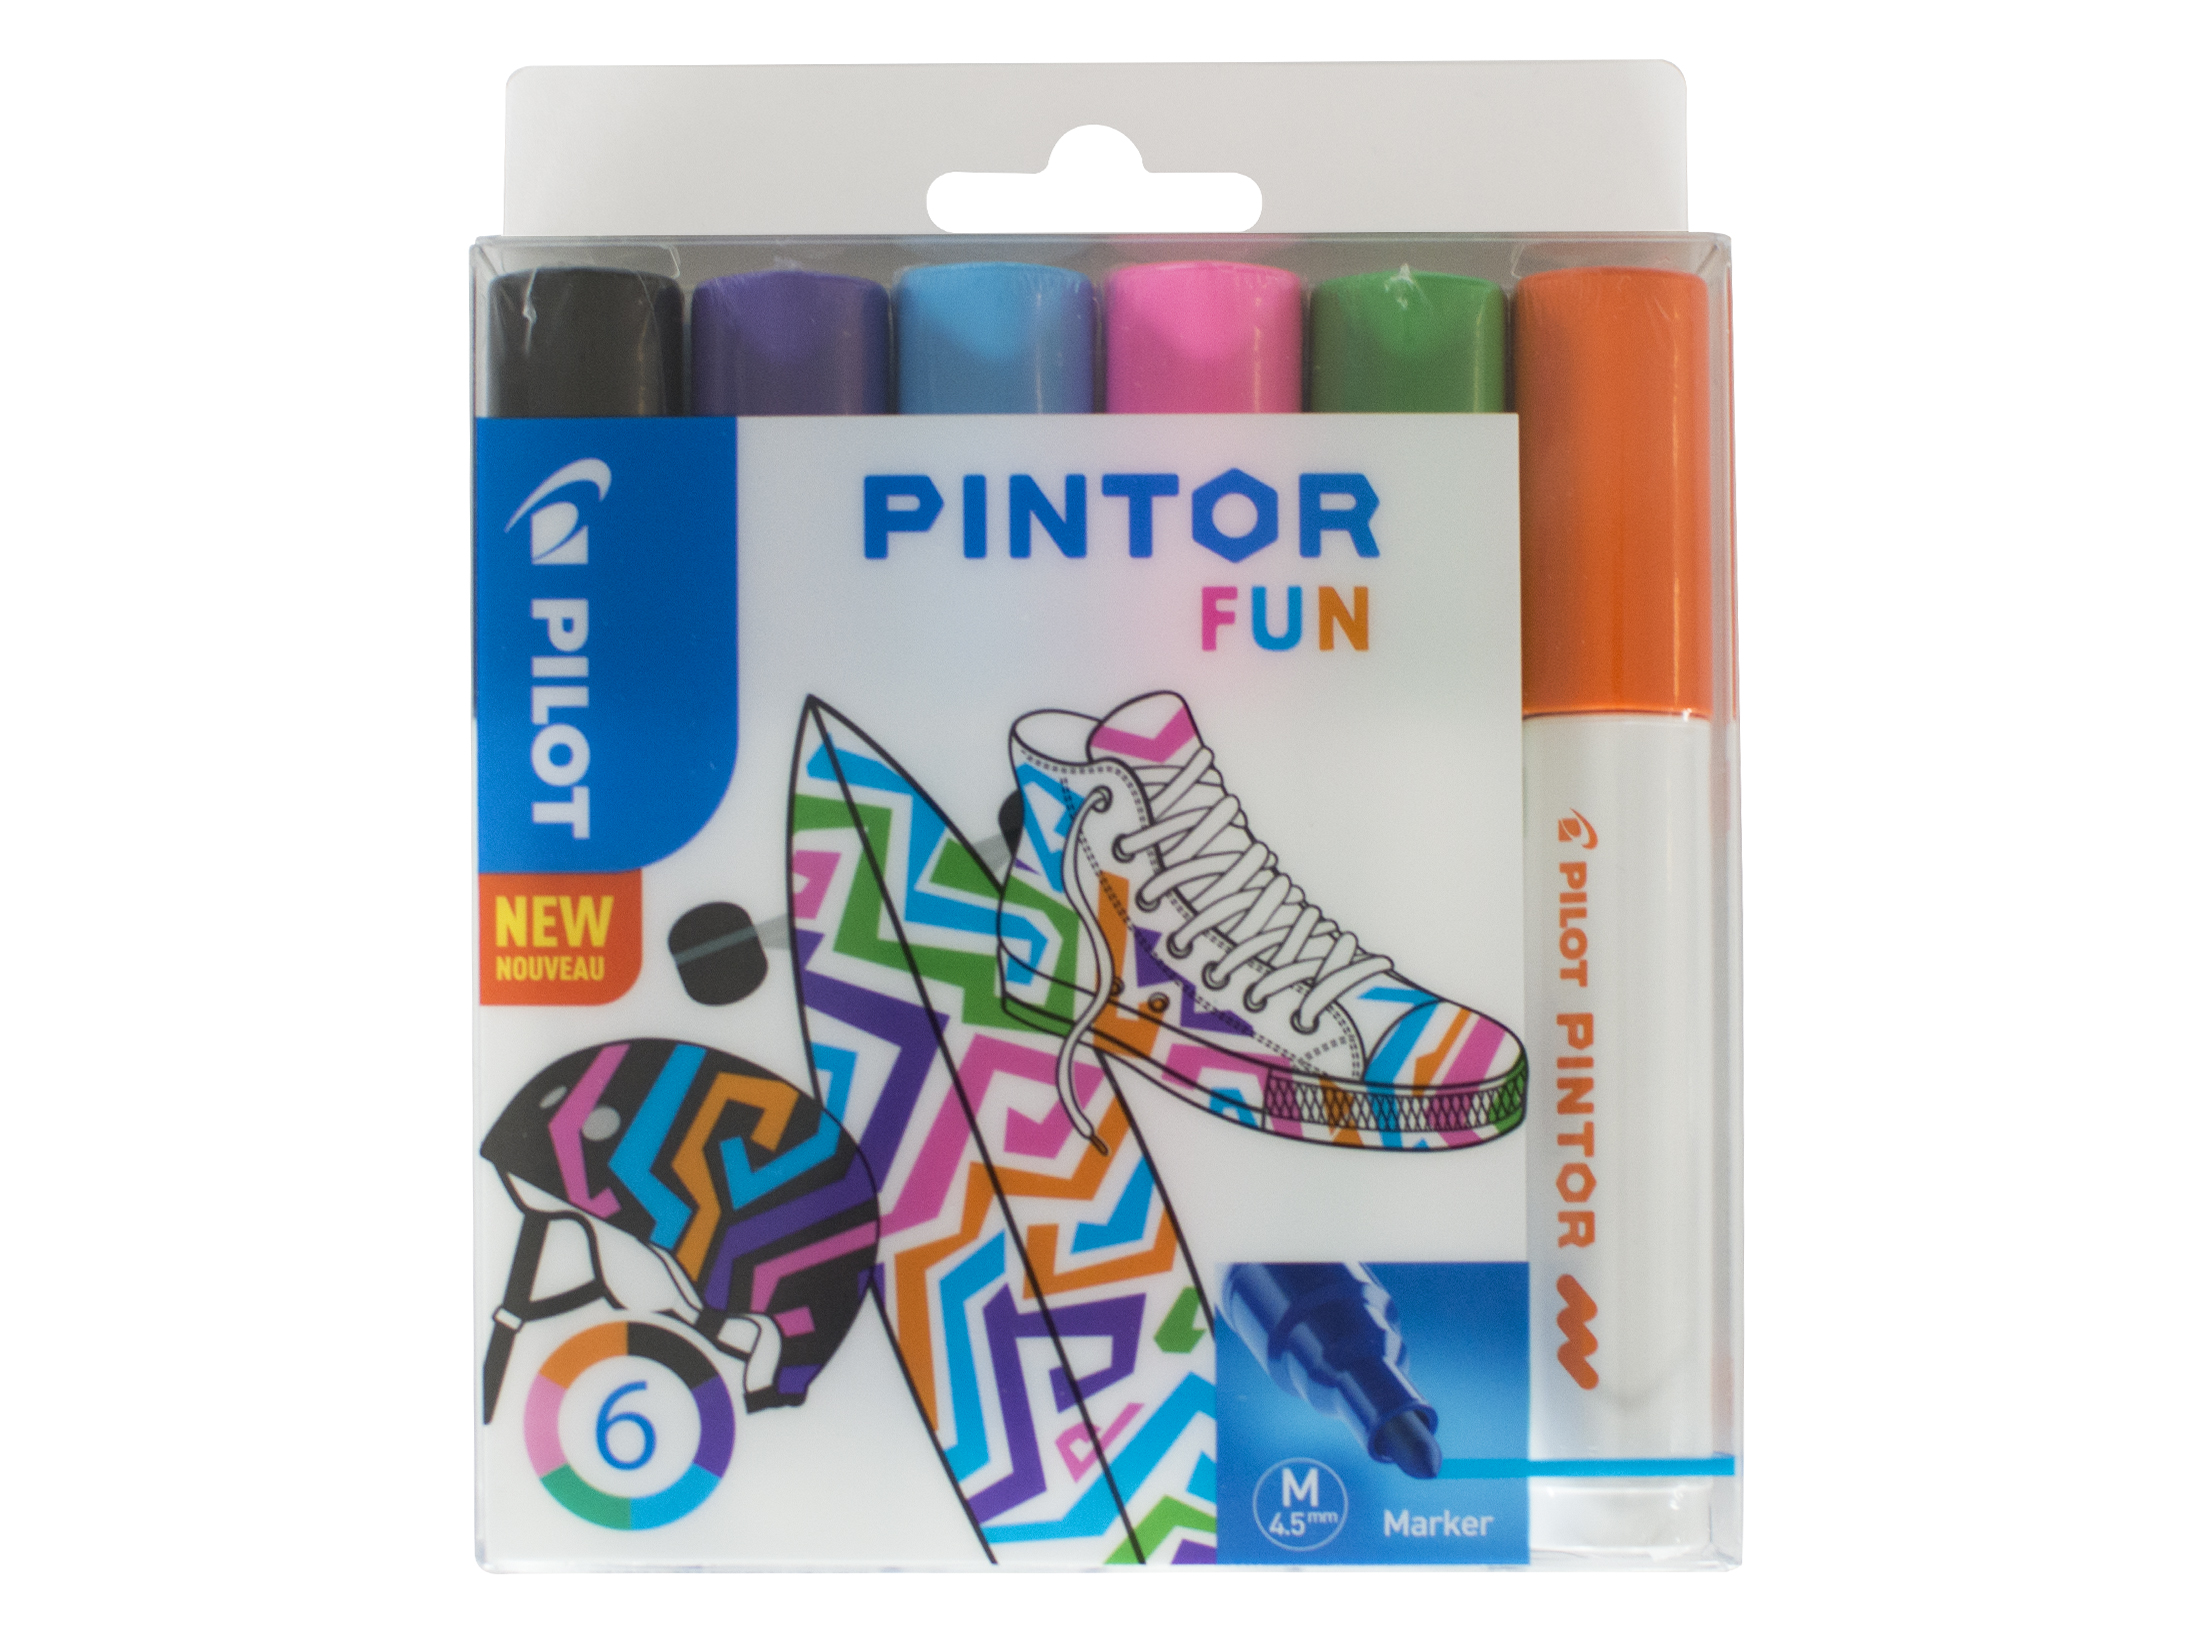 Pilot Pintor The Paint Marker Dedicated To Creative